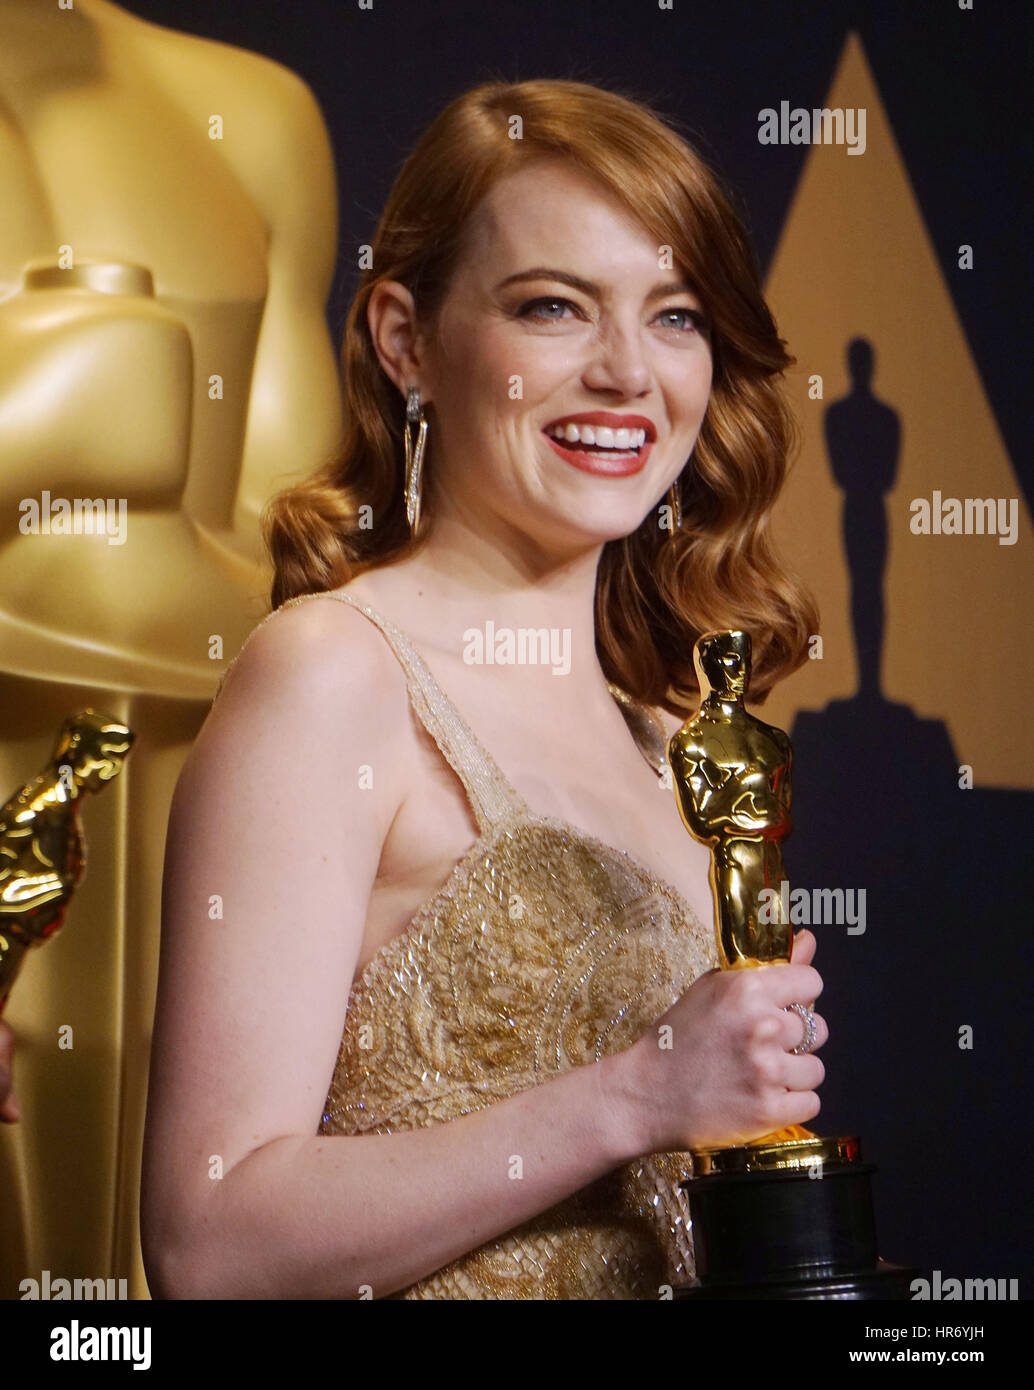 Emma Stone 305  89th Academy Awards ( Oscars ), press room at the Dolby Theatre in Los Angeles. February 26, 2017. - Stock Image